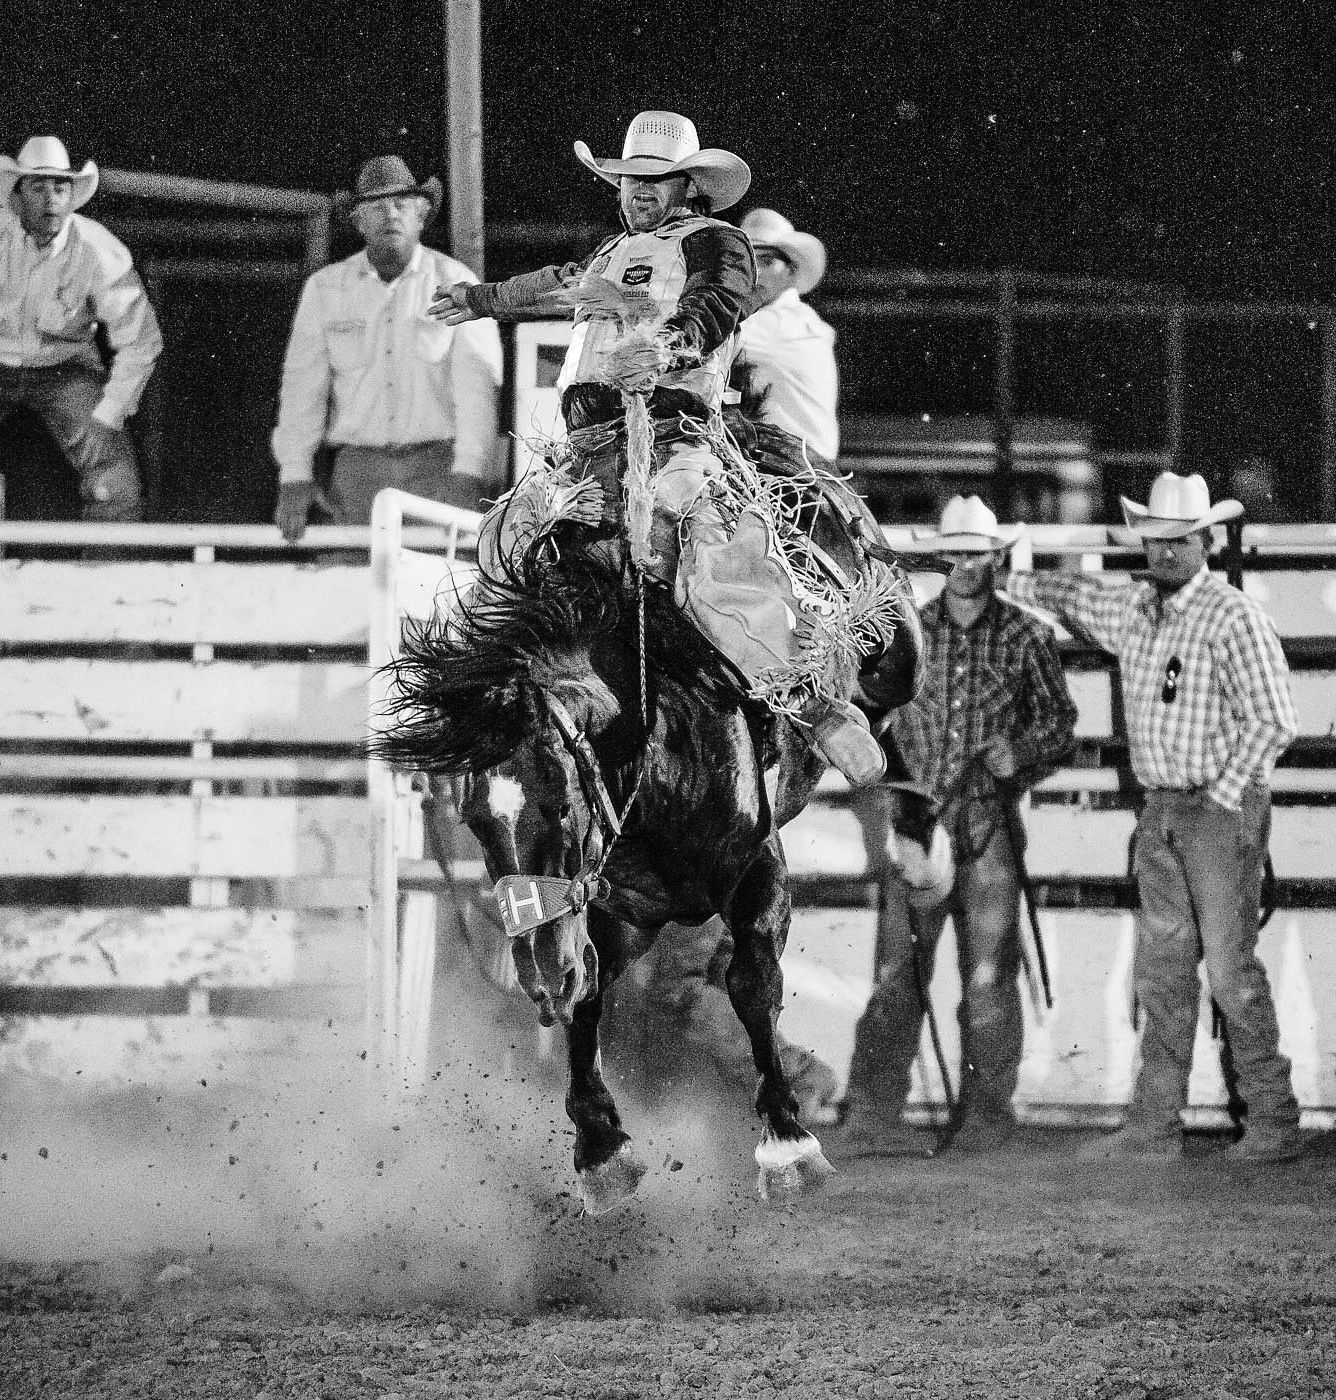 Whisky Bent Roughstock Futurity - Hard bucking horses and rank bulls!